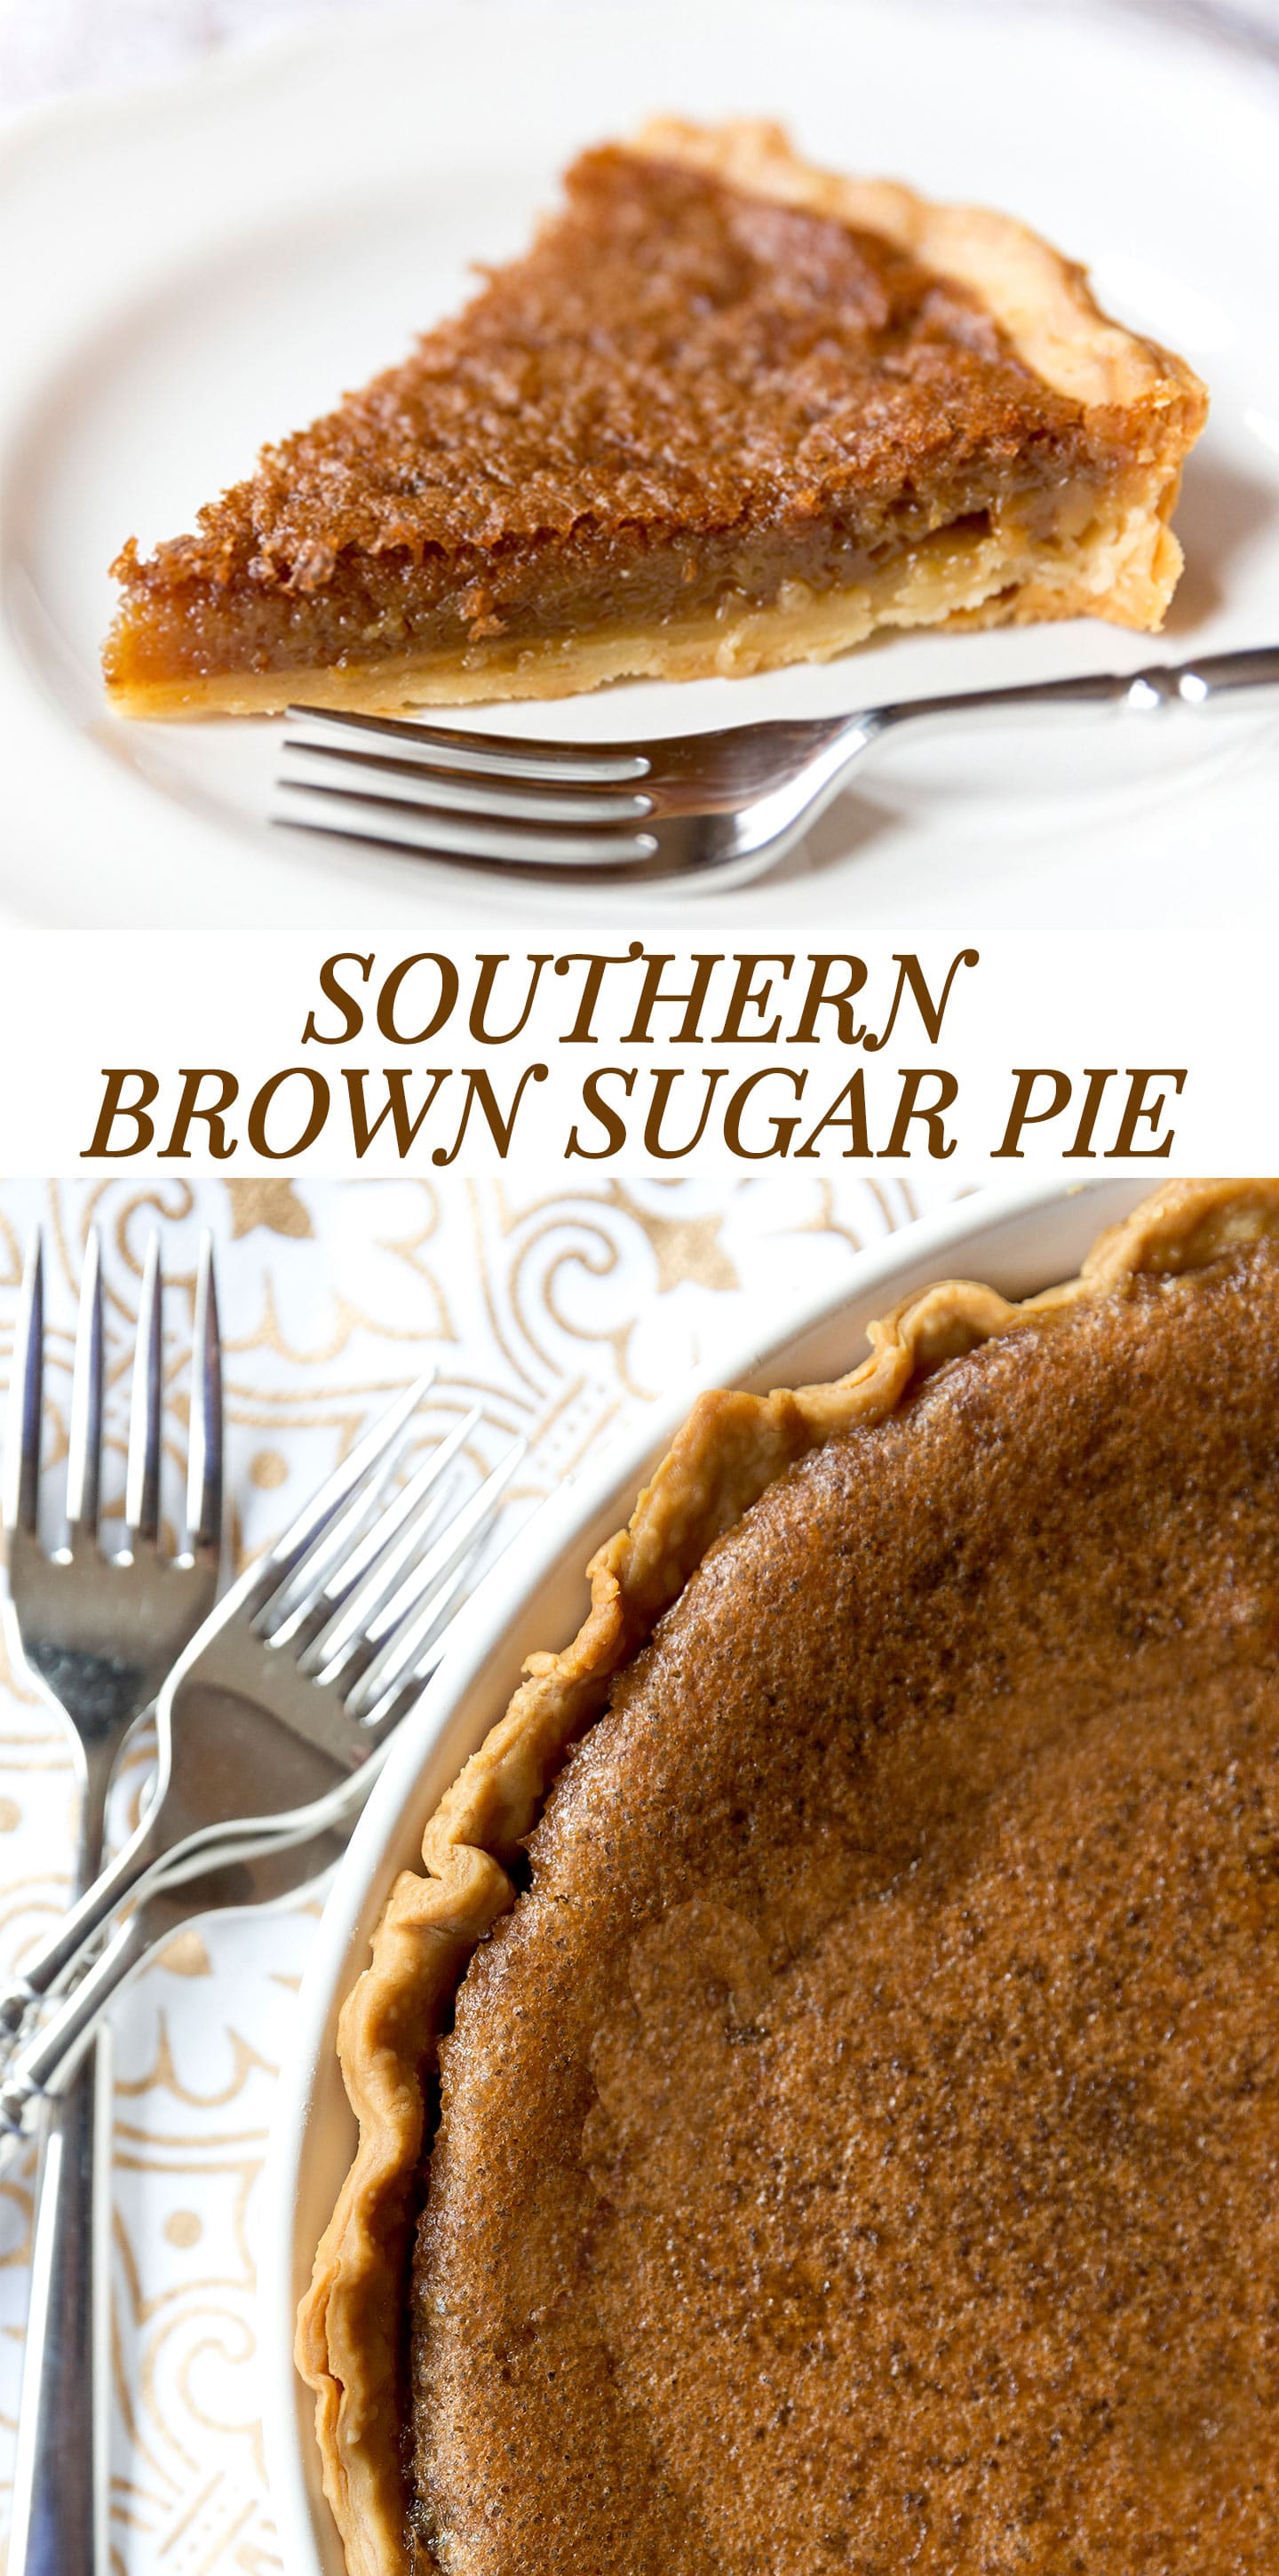 Southern Brown Sugar Pie Recipe